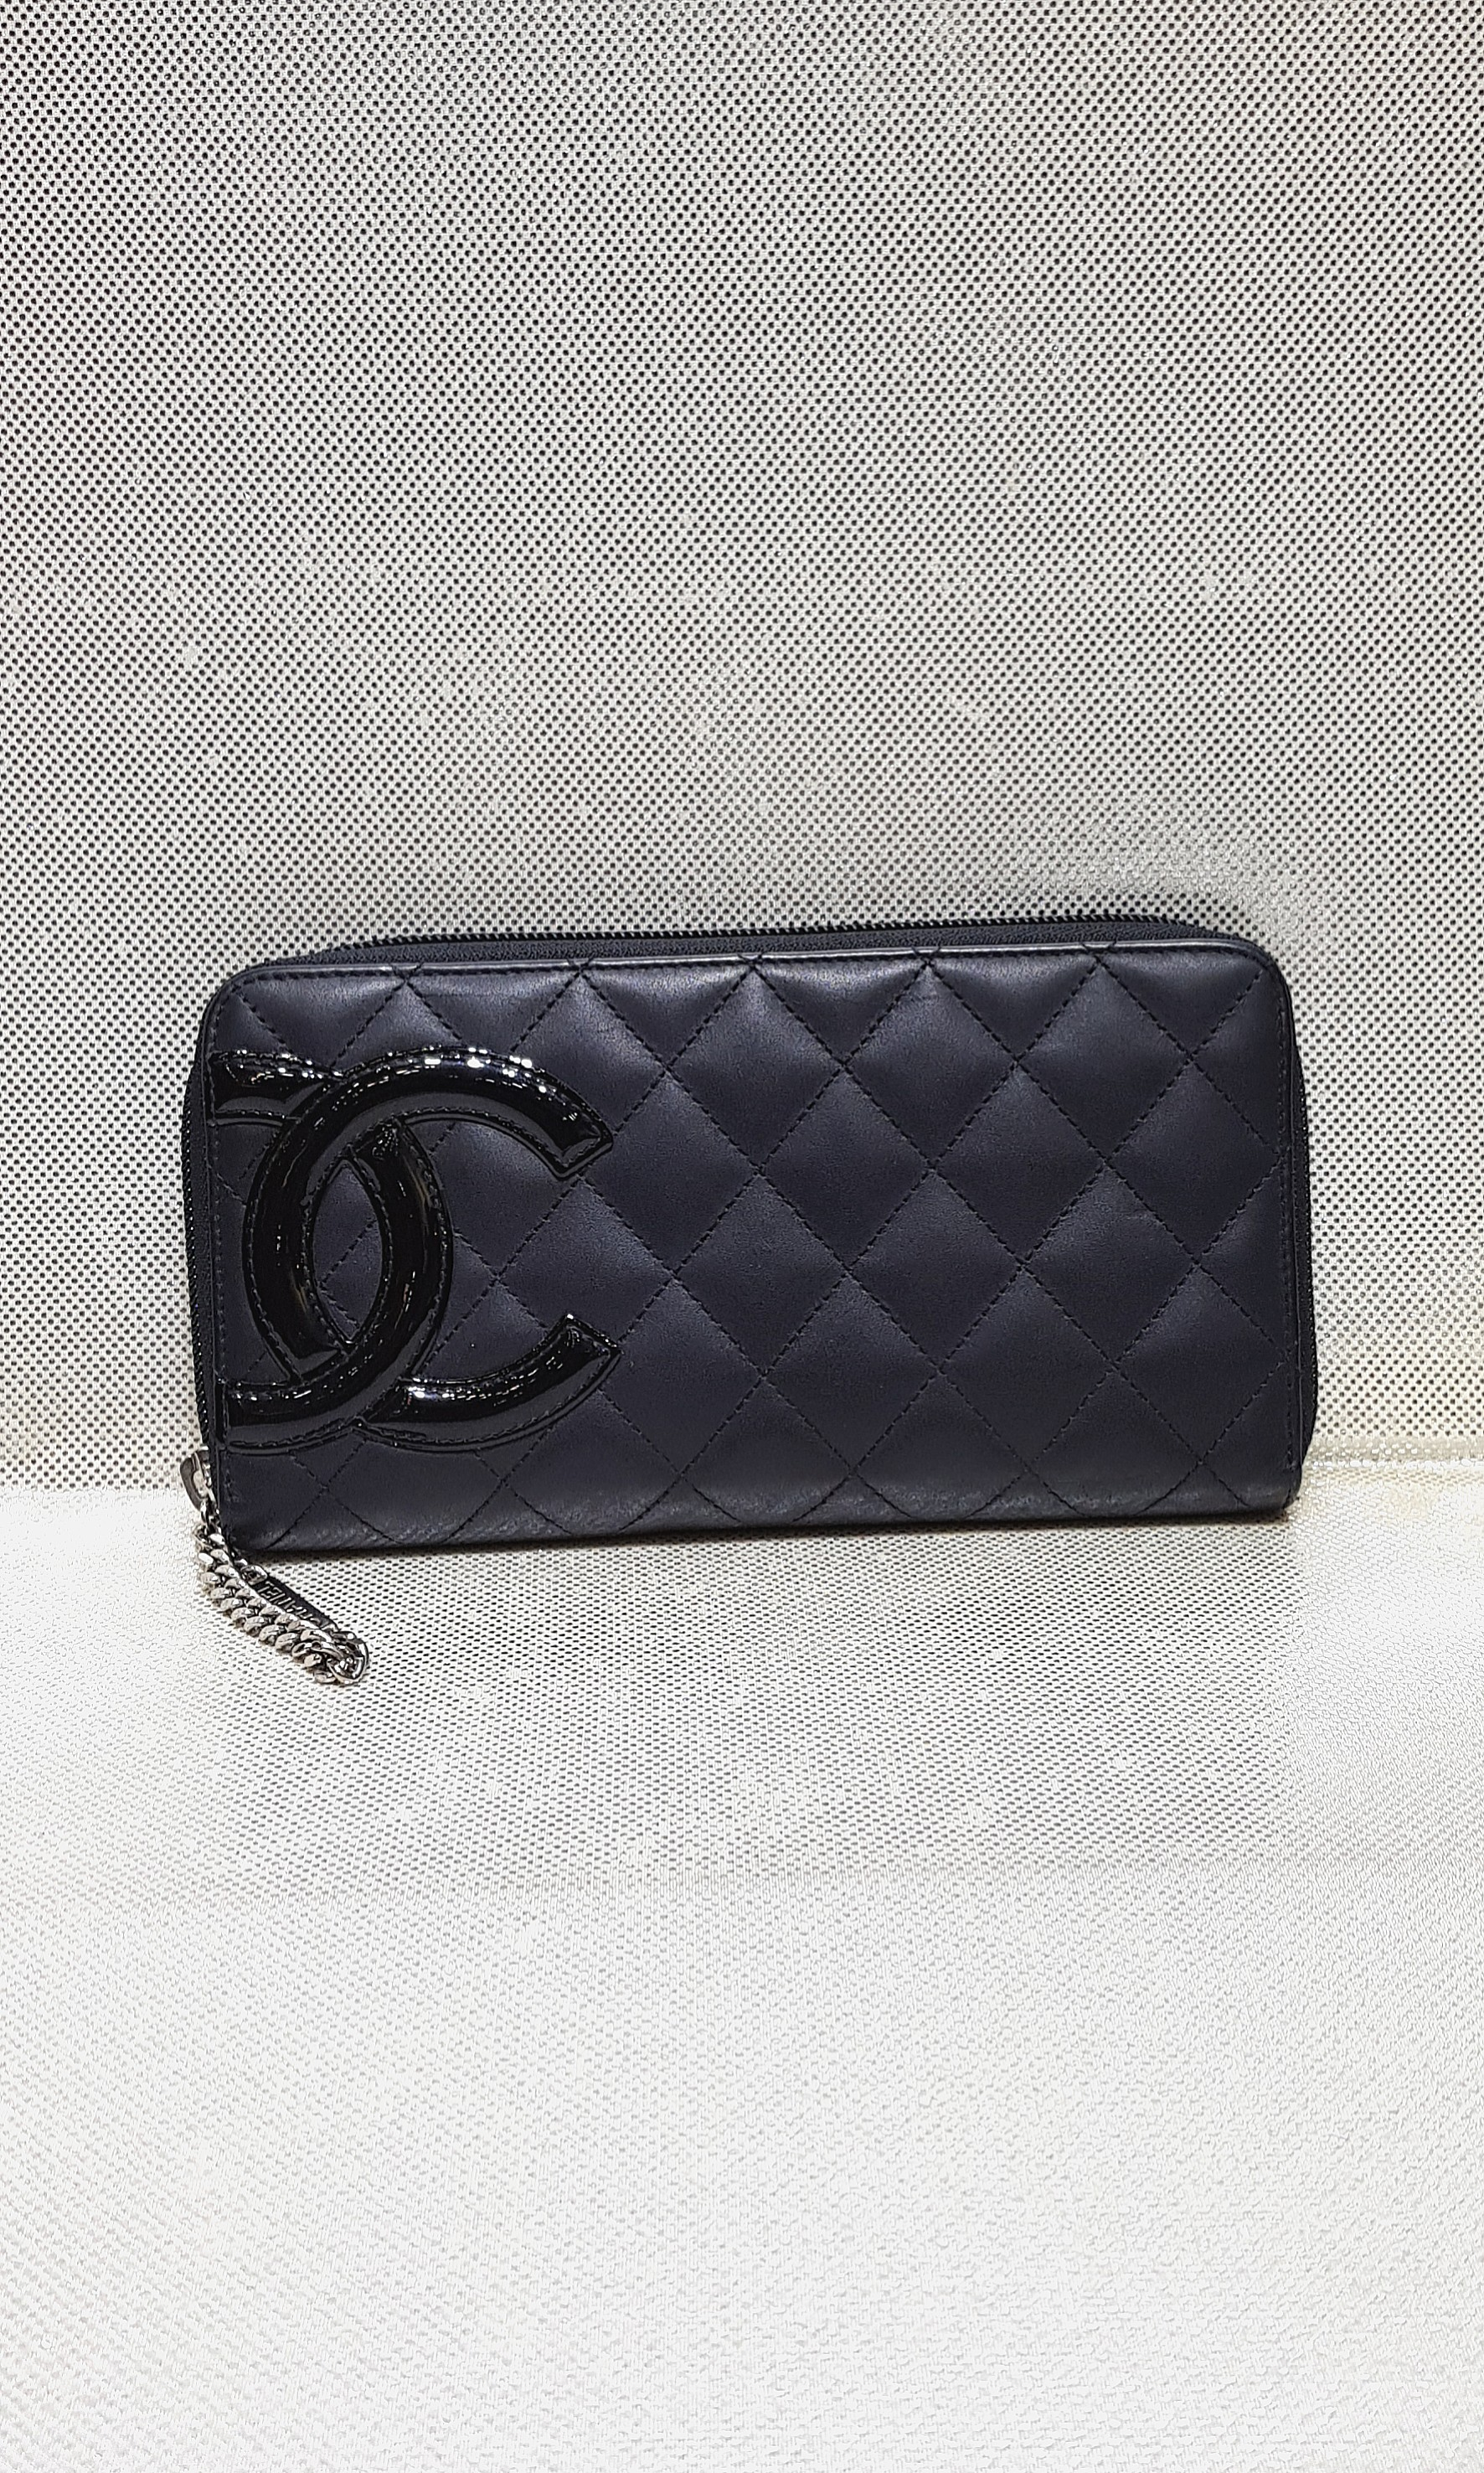 3dfc0438f718 Chanel Black Cambon Zippy Long Wallet, Luxury, Bags & Wallets, Wallets on  Carousell